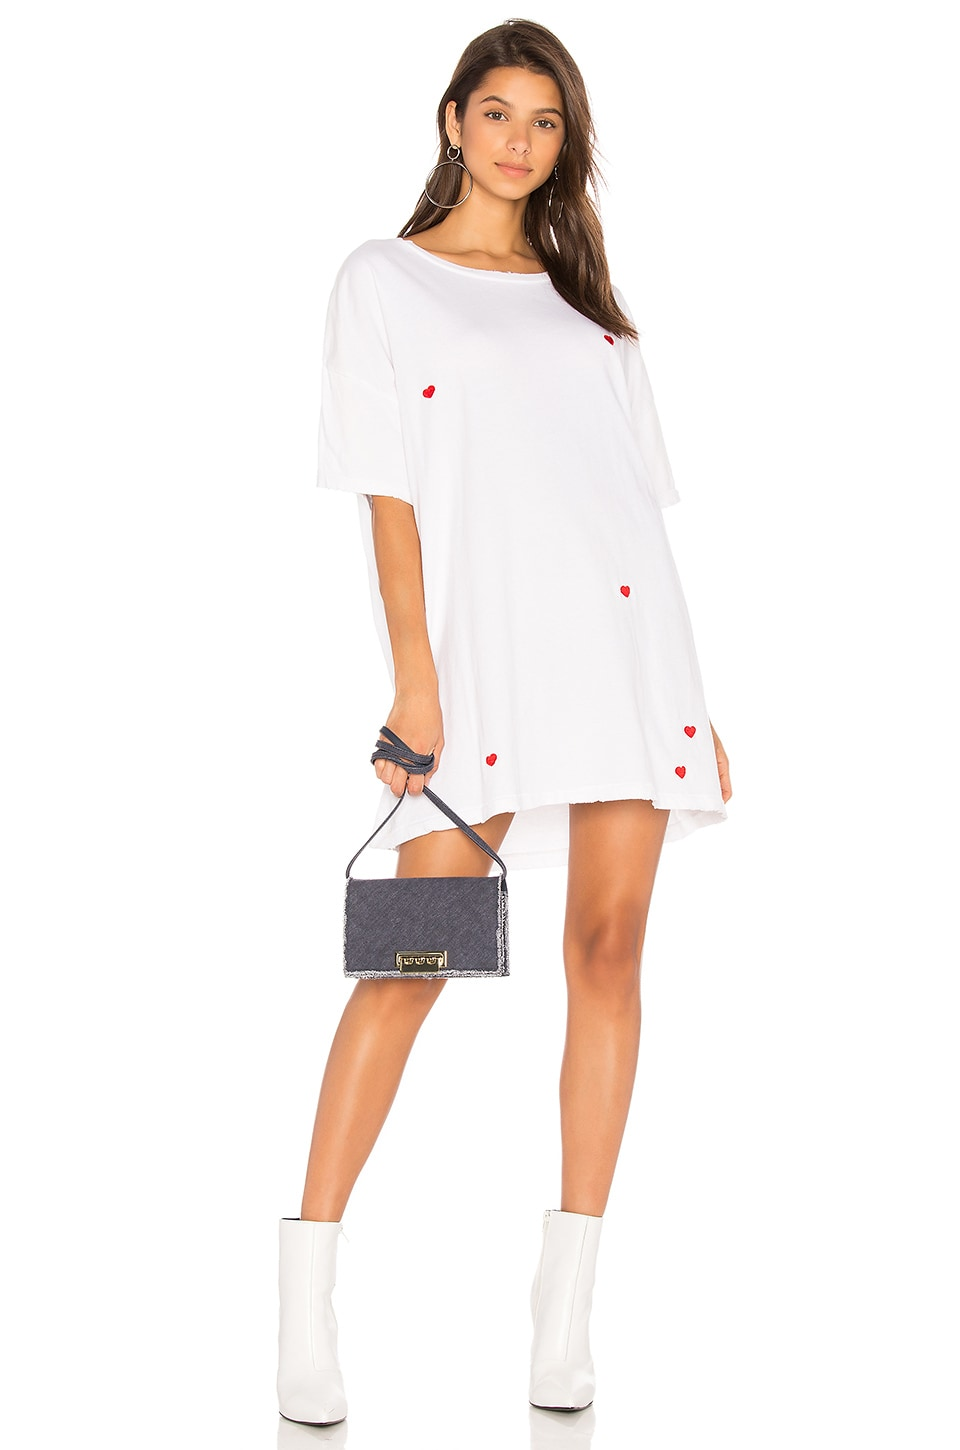 Wildfox Couture Scattered Hearts Tee in Clean White